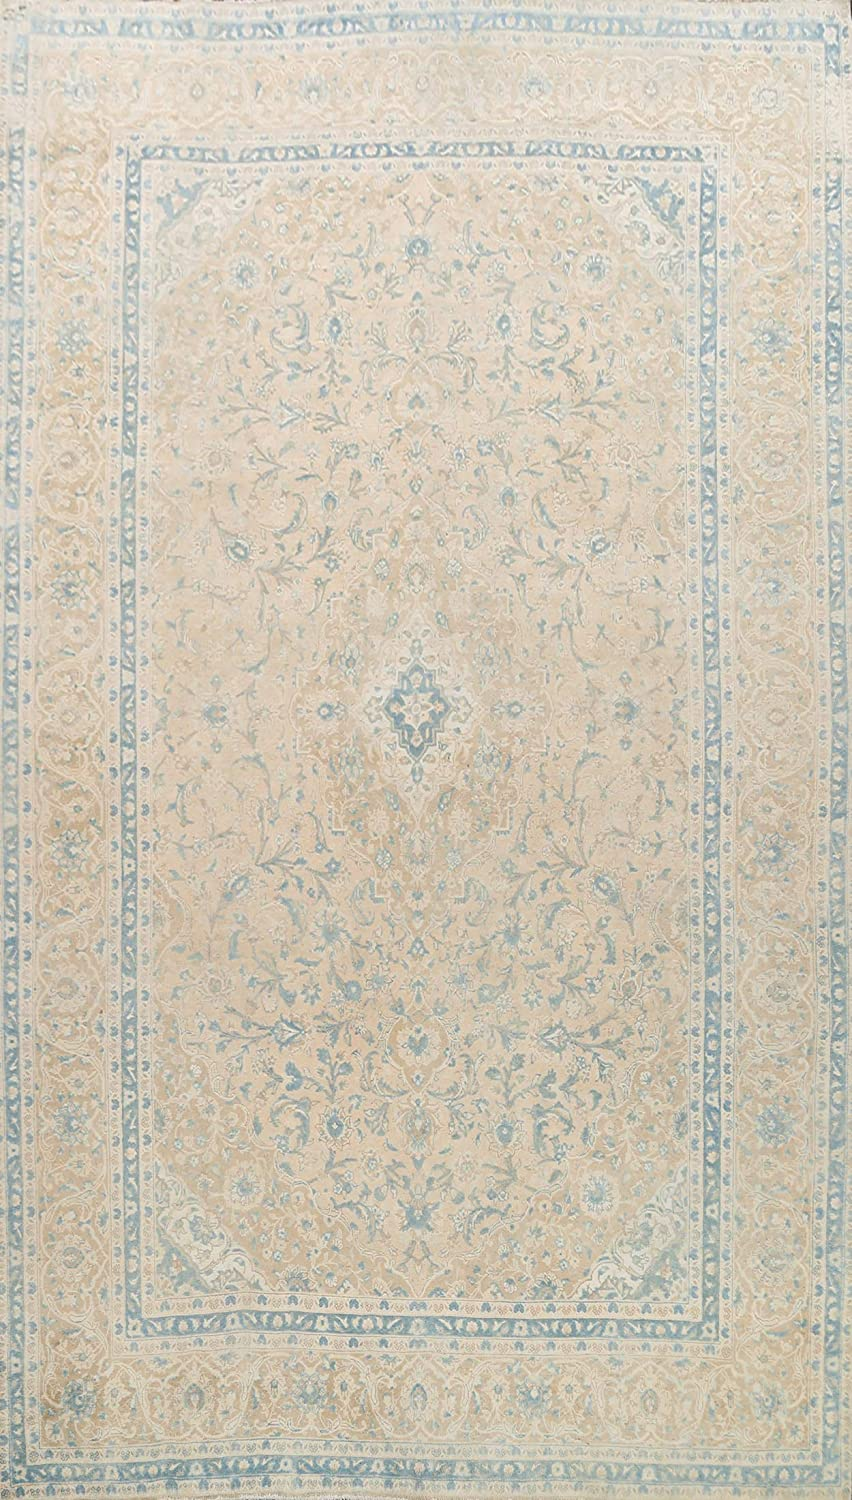 Vintage Muted At the price of surprise Distressed Floral Kashaan Daily bargain sale Rug Area Oriental Wool H